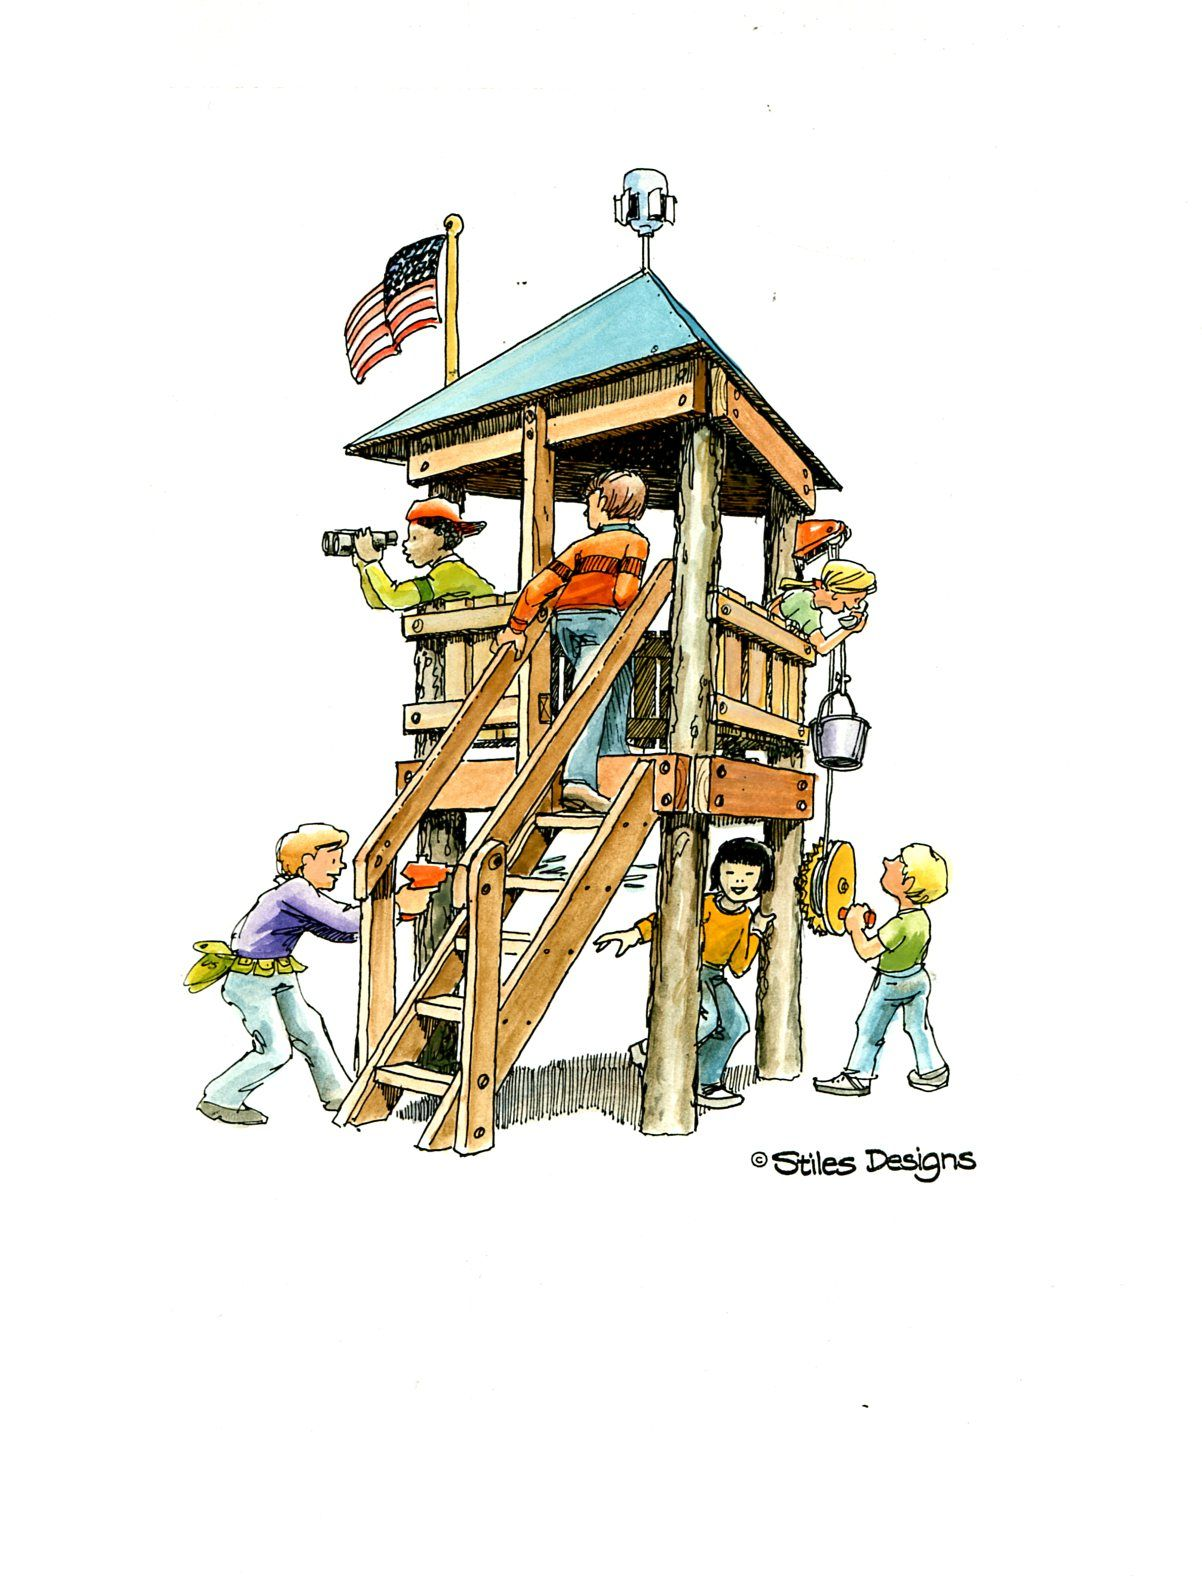 How to build an indoor tree house play loft and drill into the studs - Easy To Build Plans For This Fun 3 Legged Treehouse Fort Now Available To